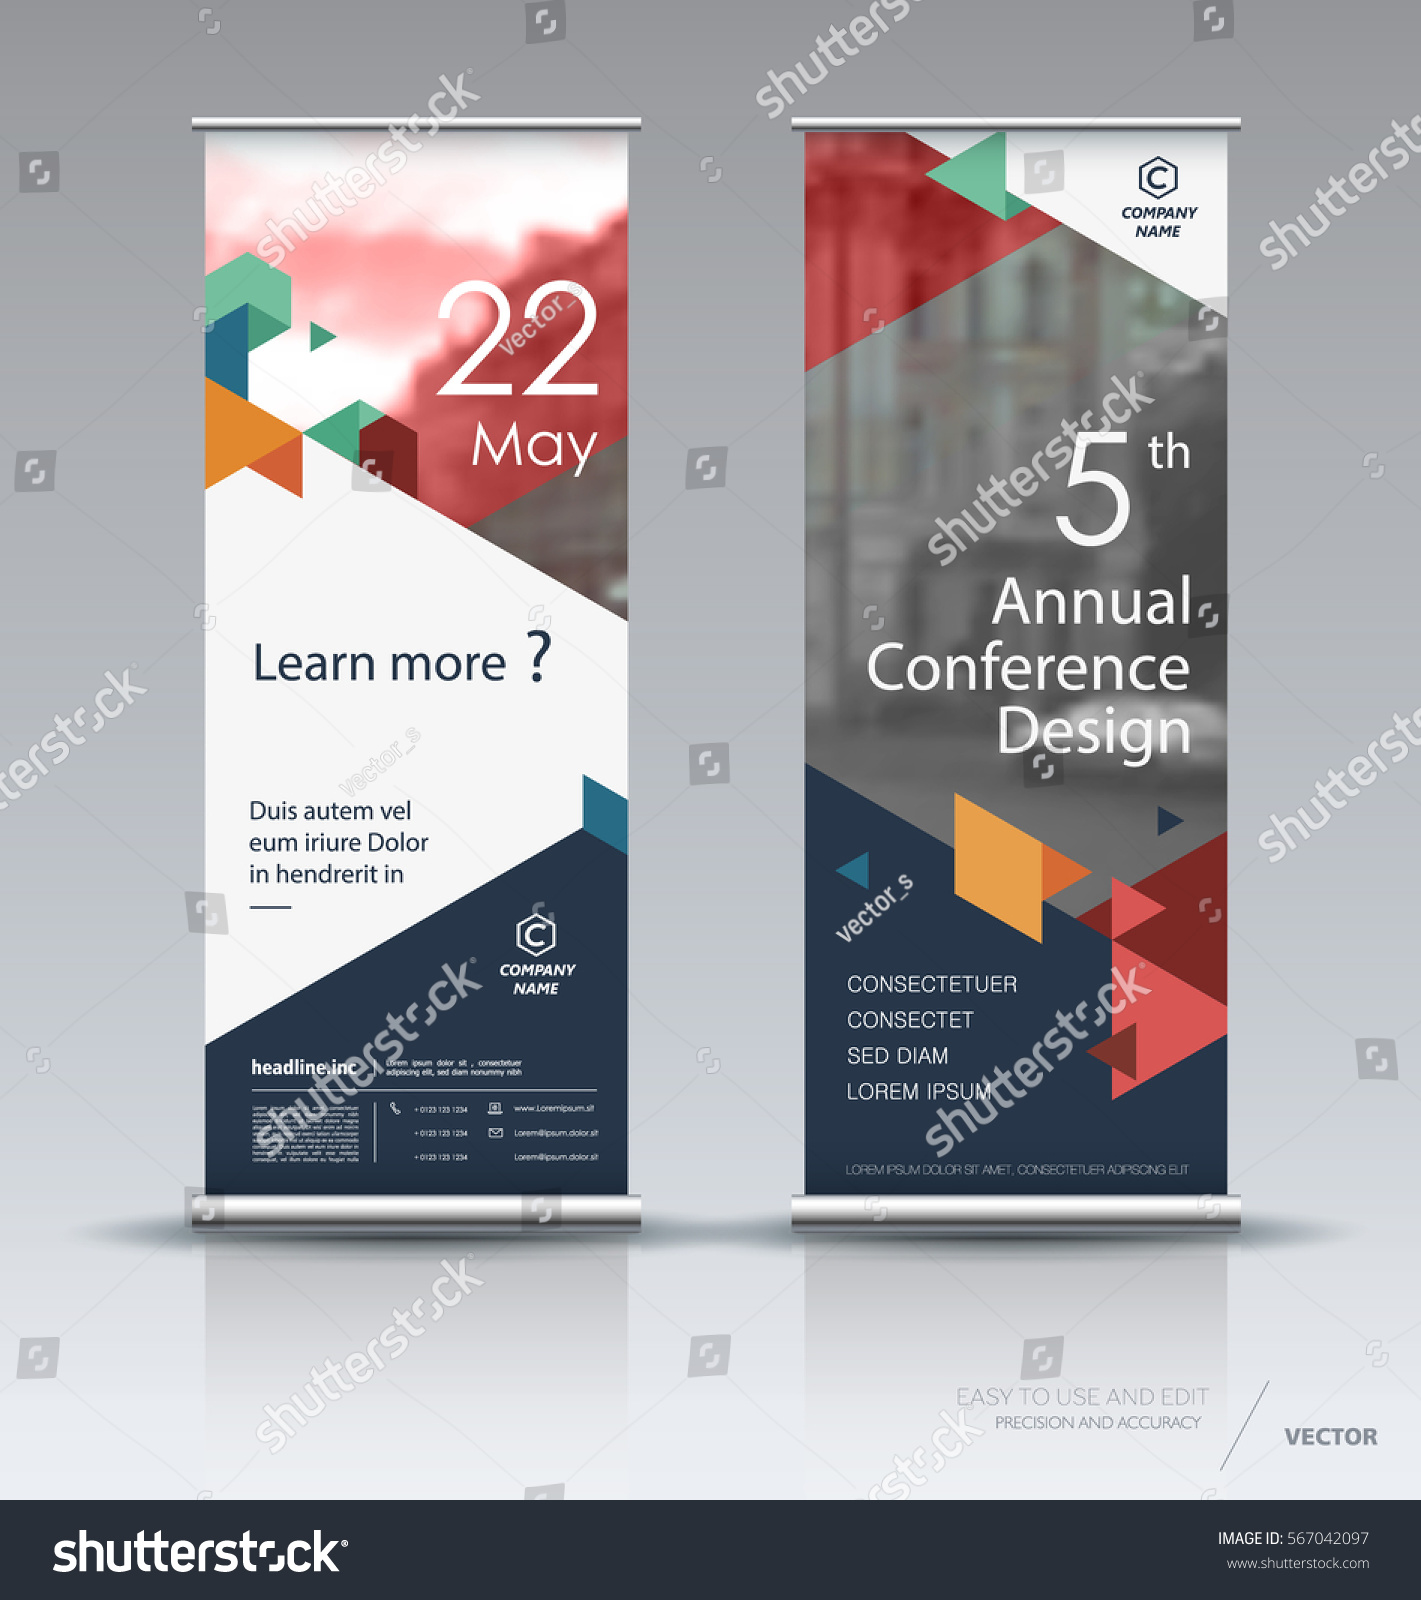 Modern Exhibition Stand Vector : Roll banner design brochure flyer vertical stock vector